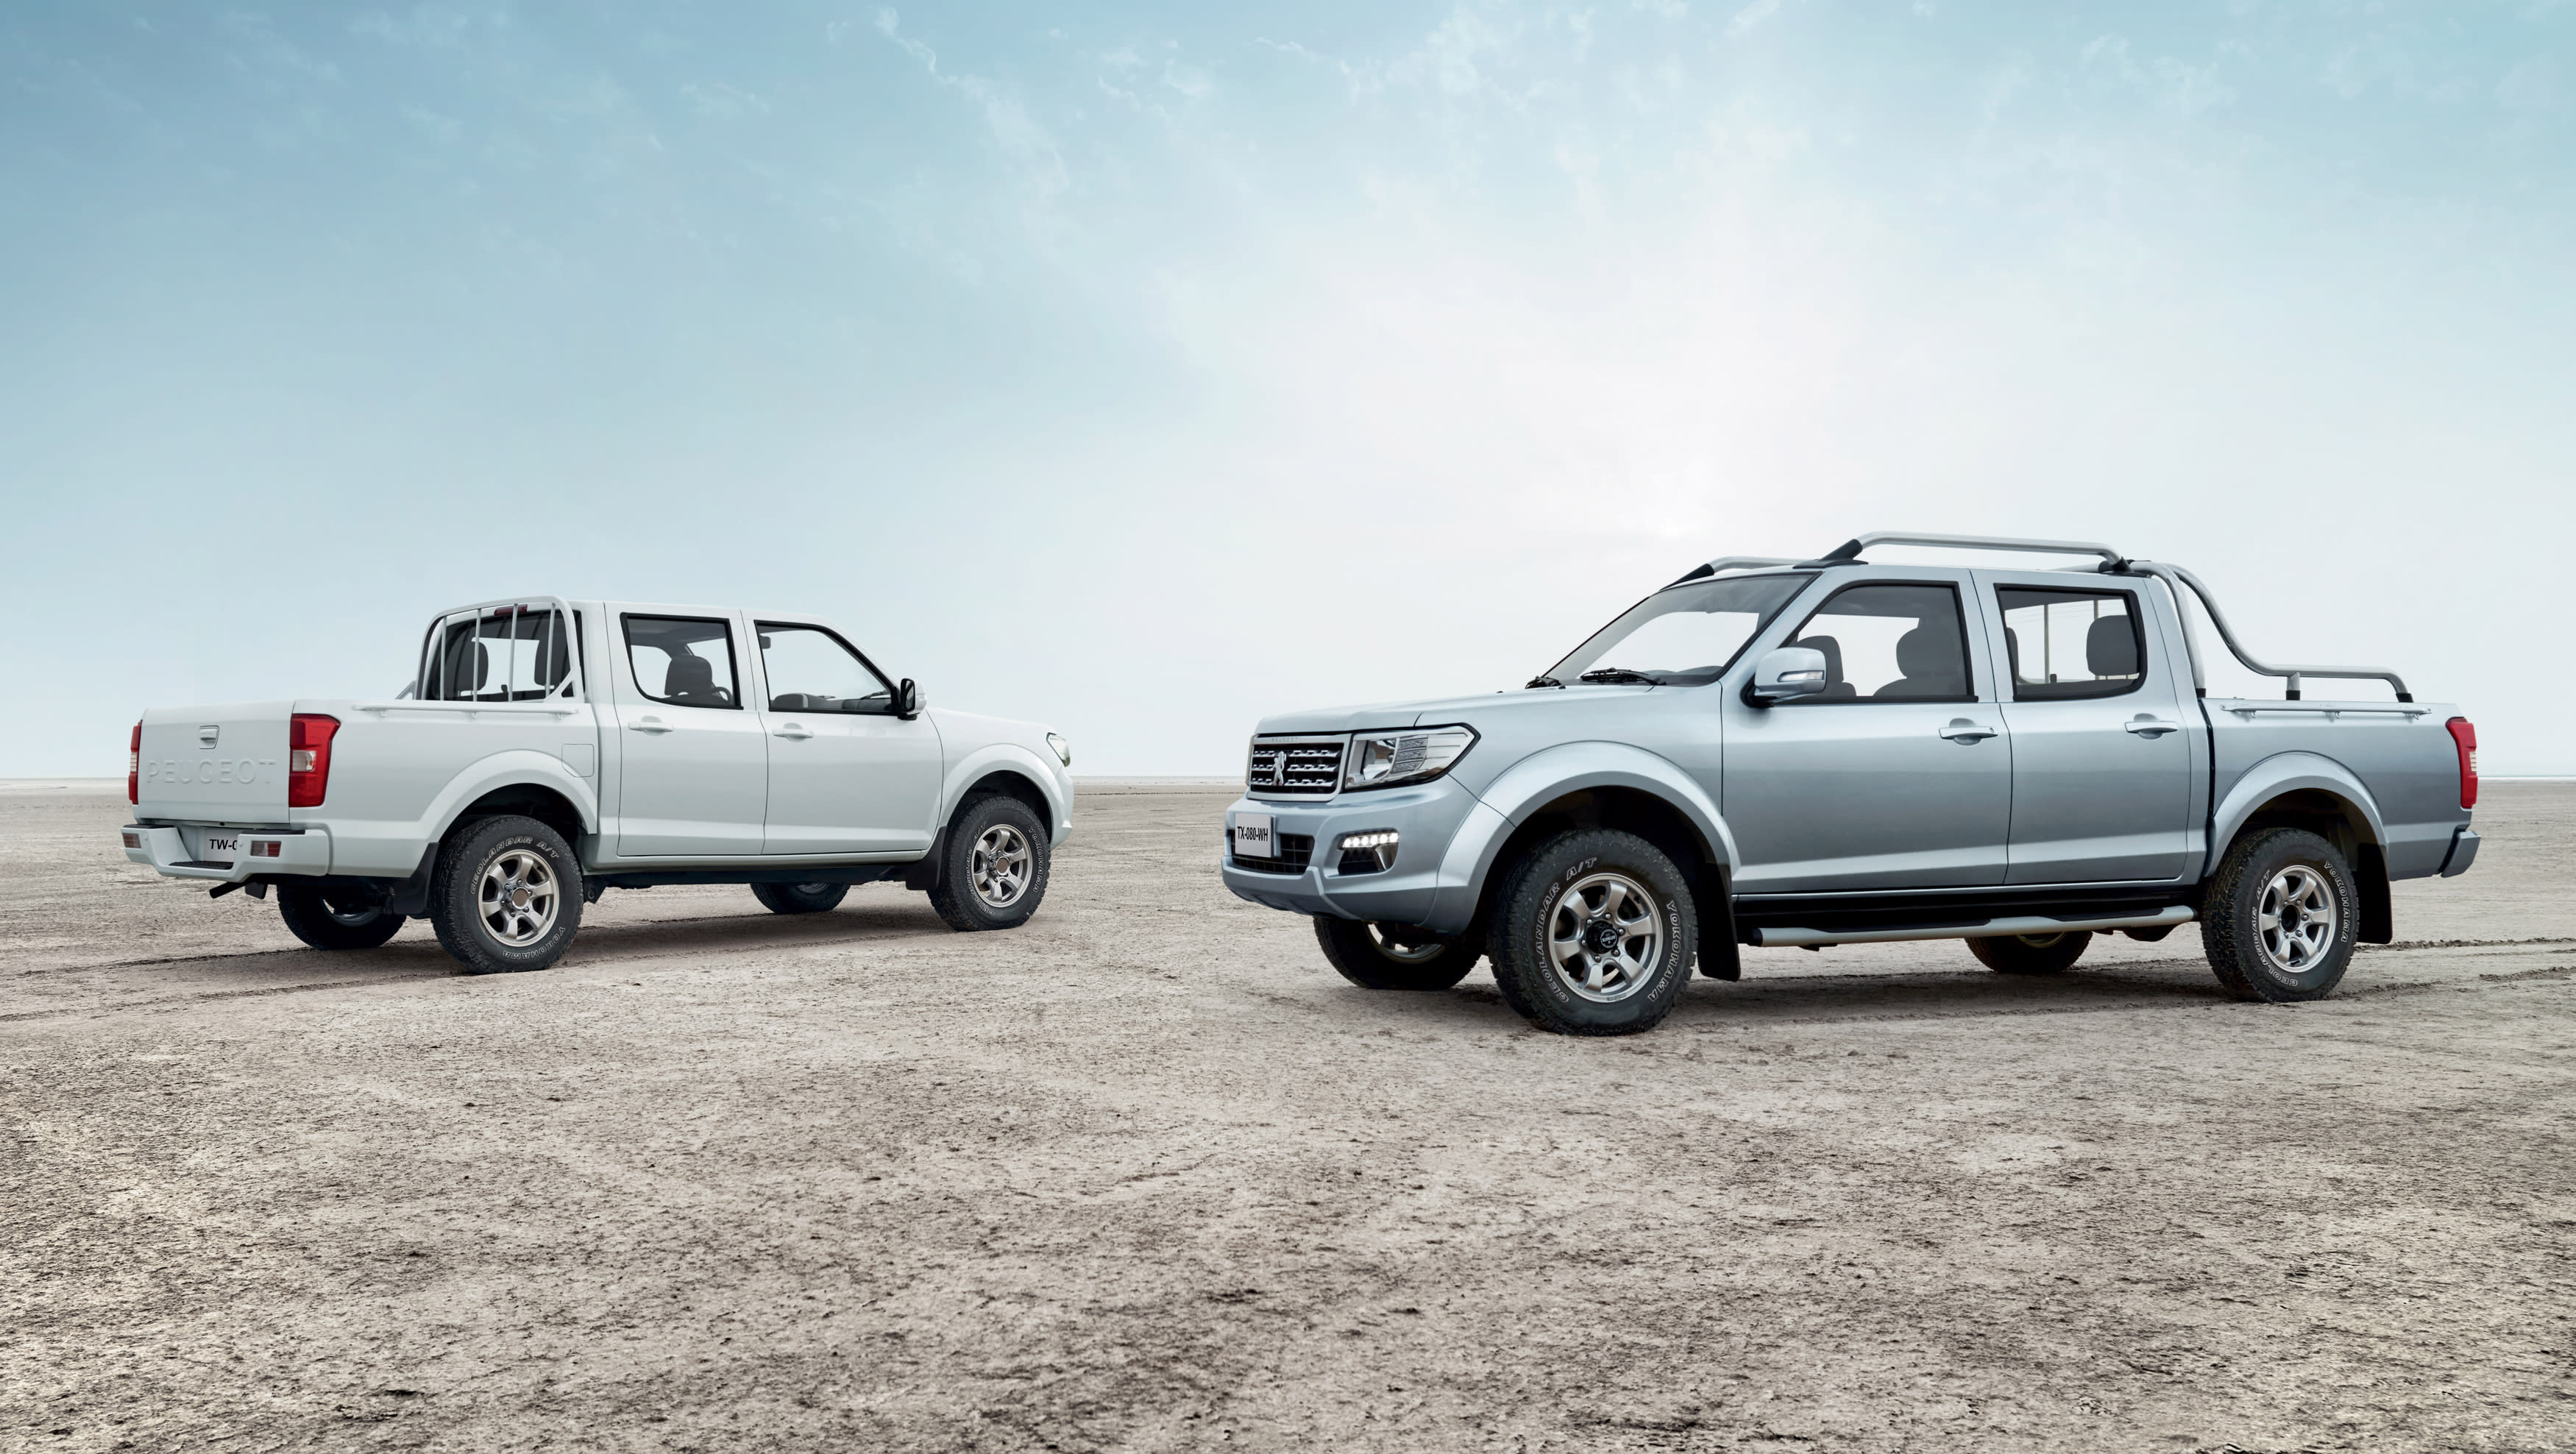 Peugeot Pick Up 2020: here's why it's unlikely Australia will see new